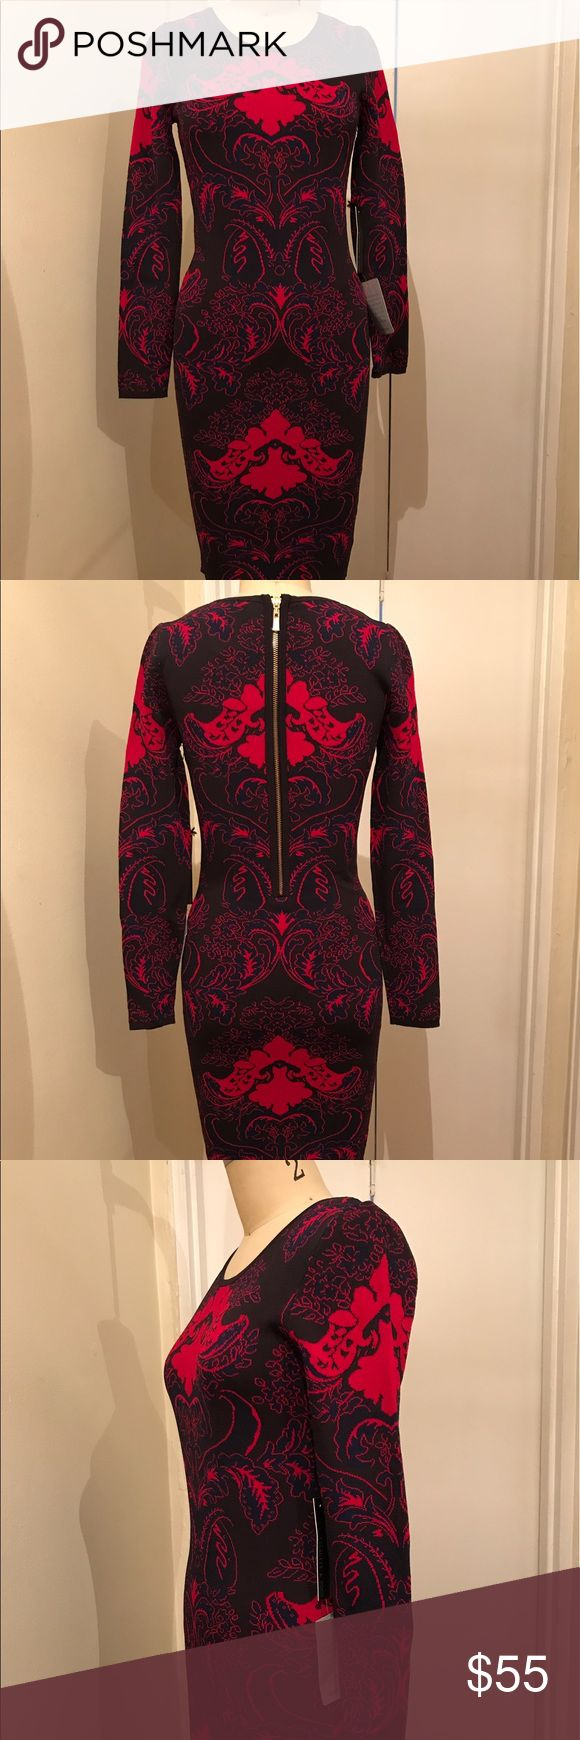 New - Fuchsia Jacquard Pattern Bodycon Dress New - Fuchsia Jacquard Pattern Bodycon Dress Sold by Nordstrom. Fabric has tones of Blue, Fuchsia, Pink. The mannequin is a size 2 for reference Nordstrom Dresses